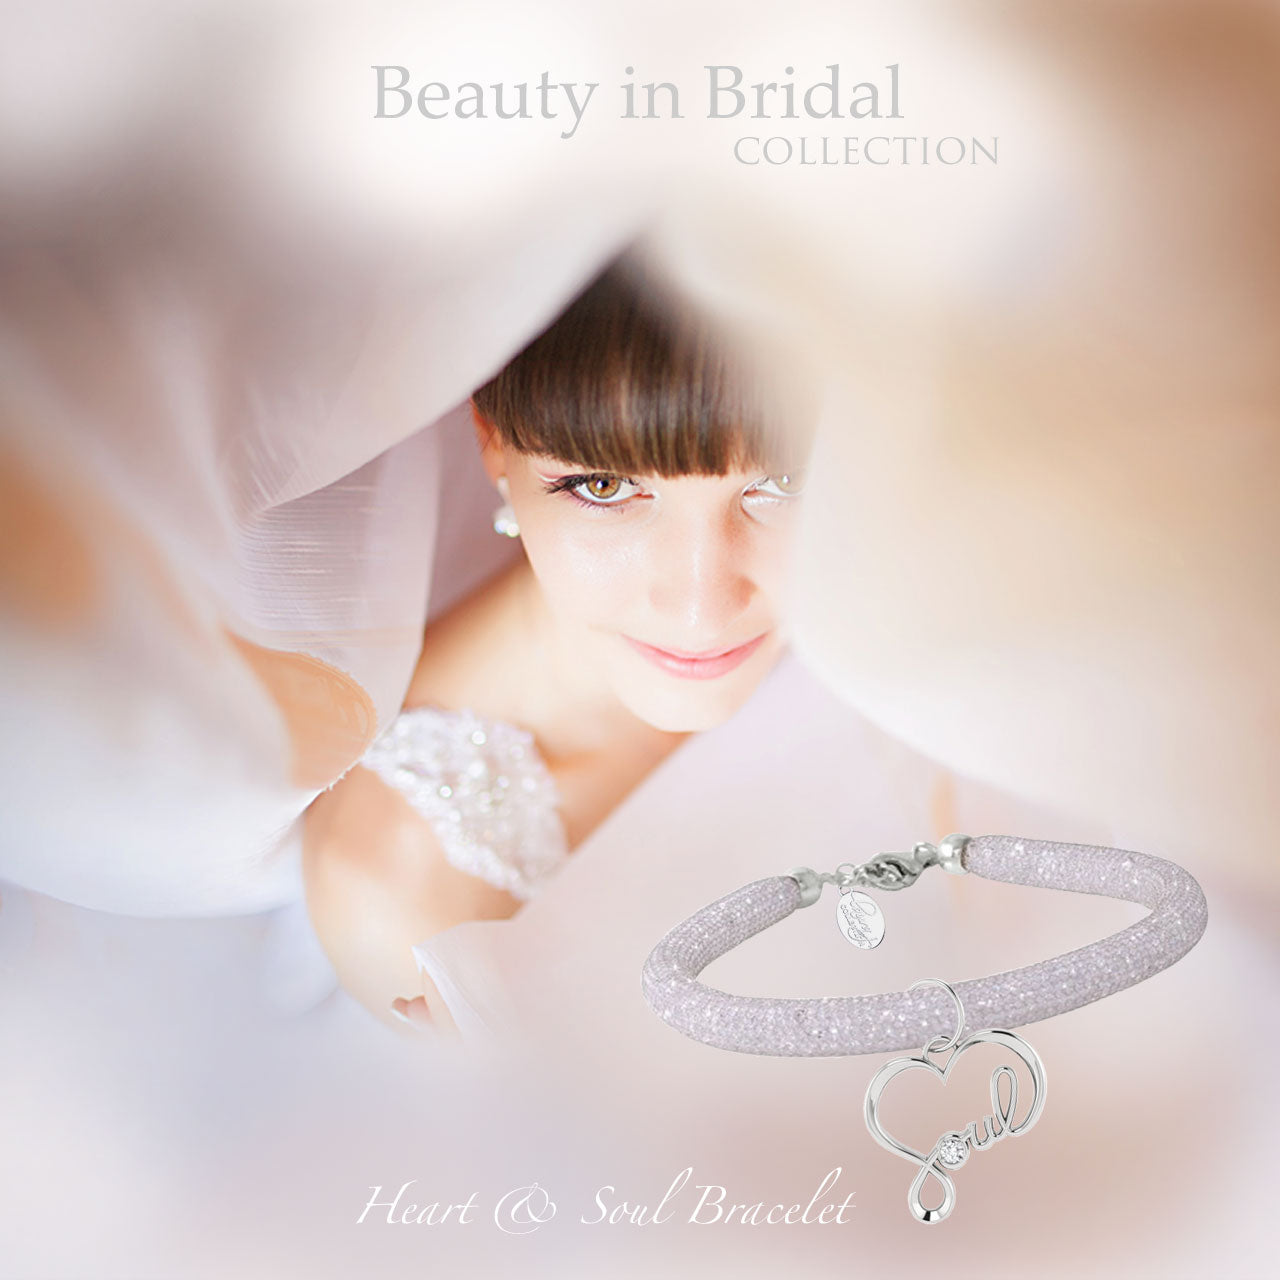 Beauty in Bridal